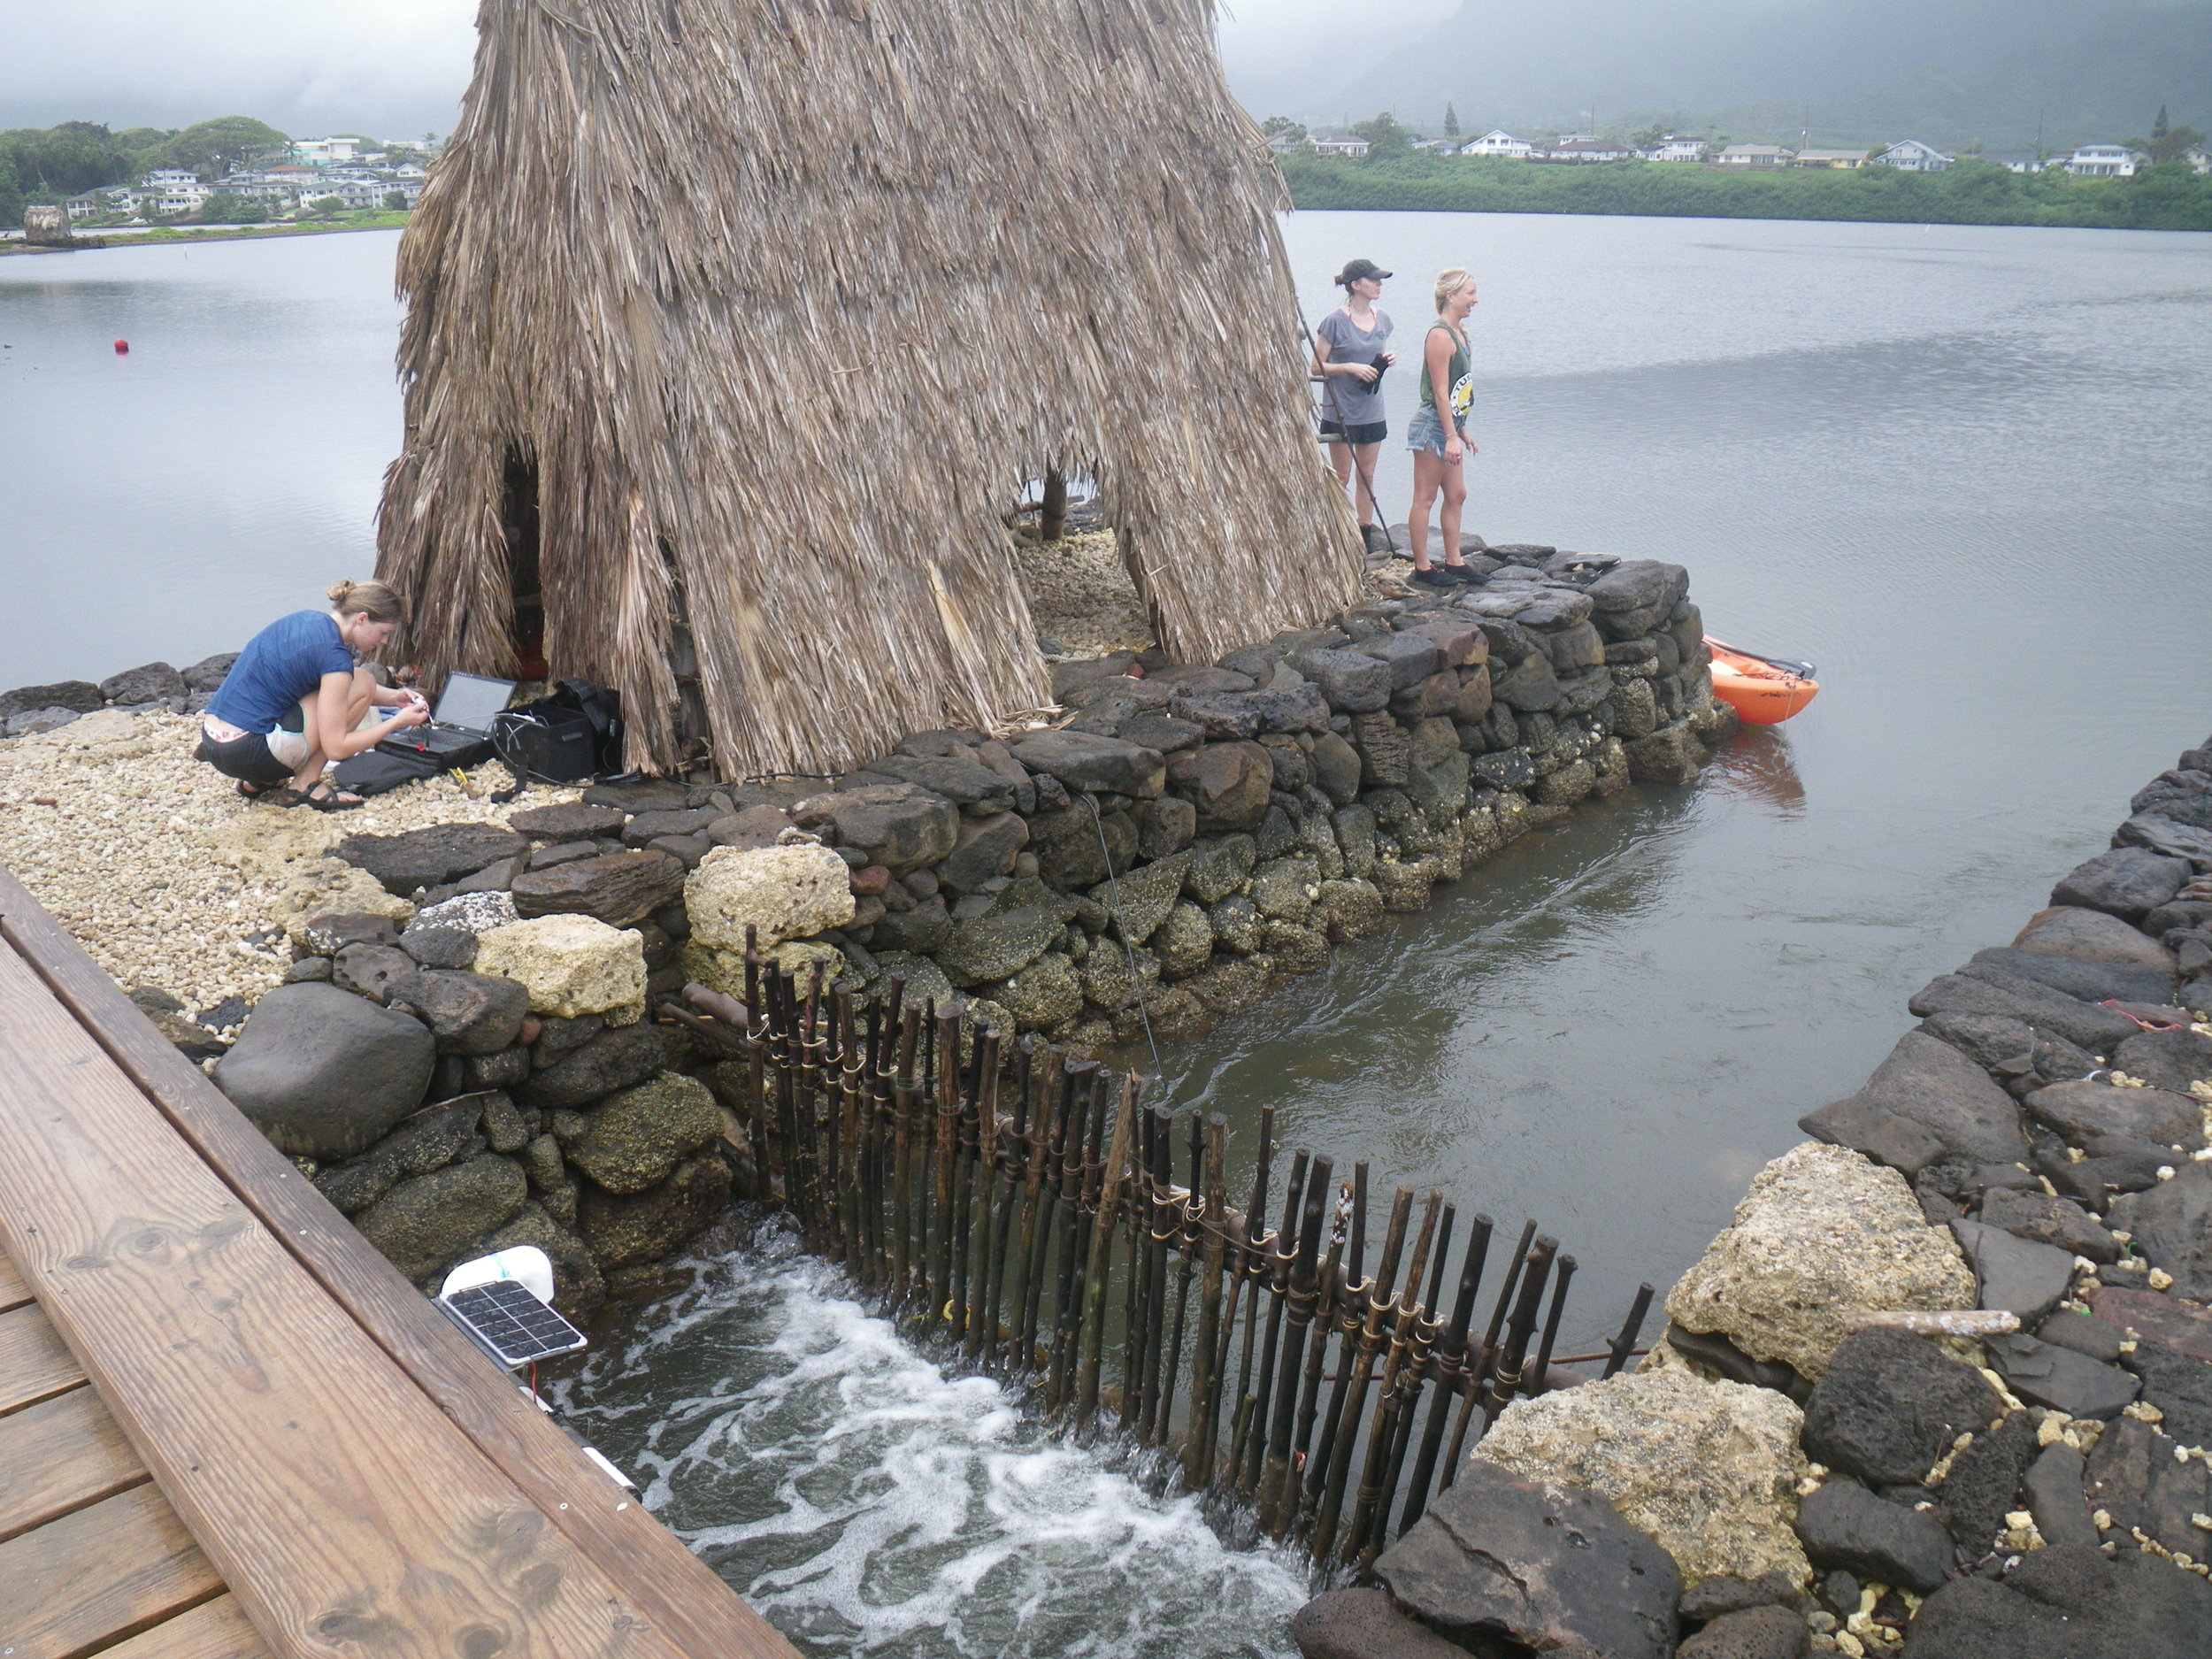 Research being conducted by UH graduate students at Heʻeia Fishpond in Kāneʻohe. Photo Credit: Paula Moehlenkamp